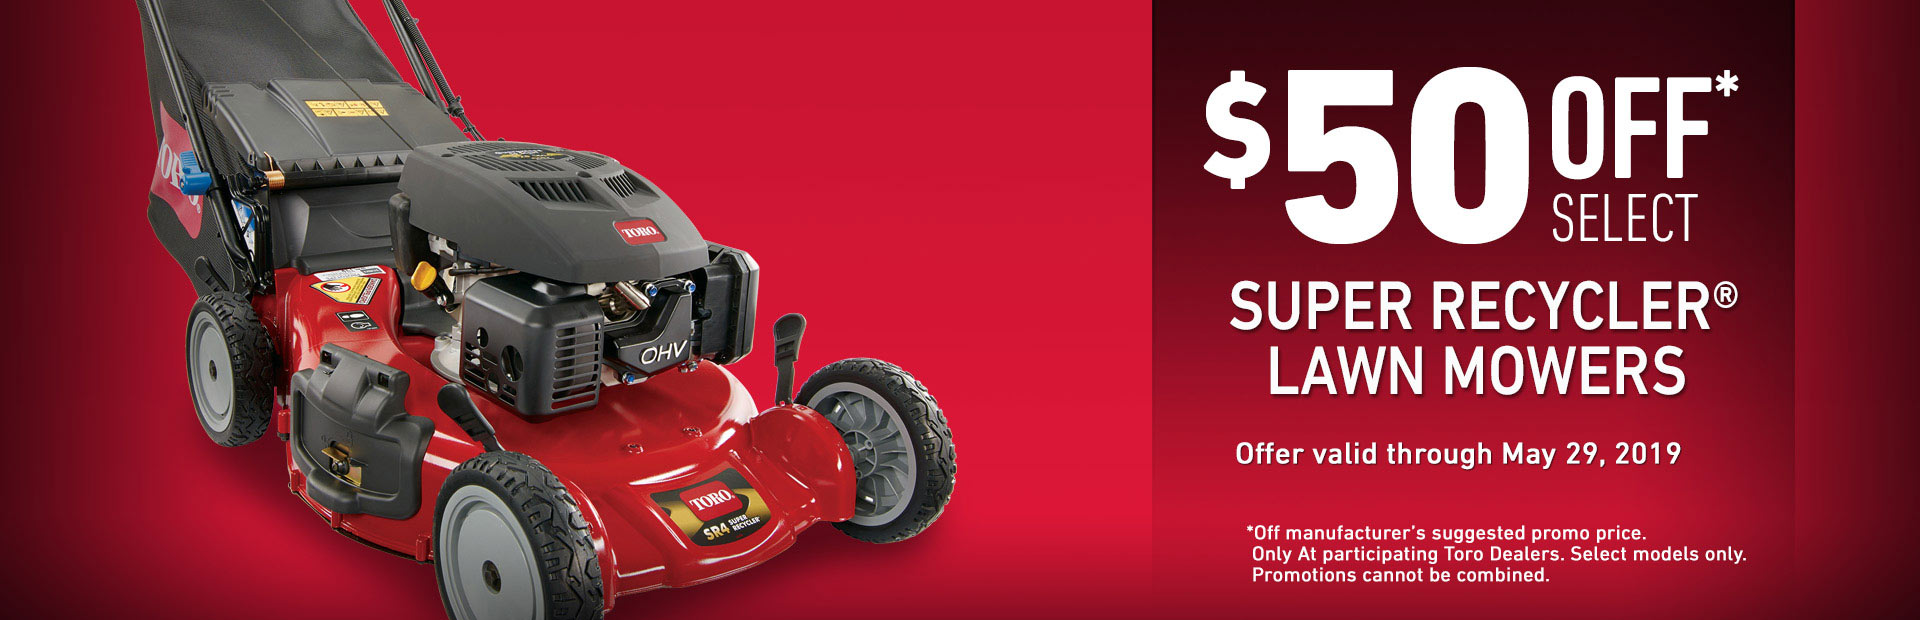 Toro® - $50 off select Super Recycler® Lawn Mowers. Offer valid through May 29th, 2019.